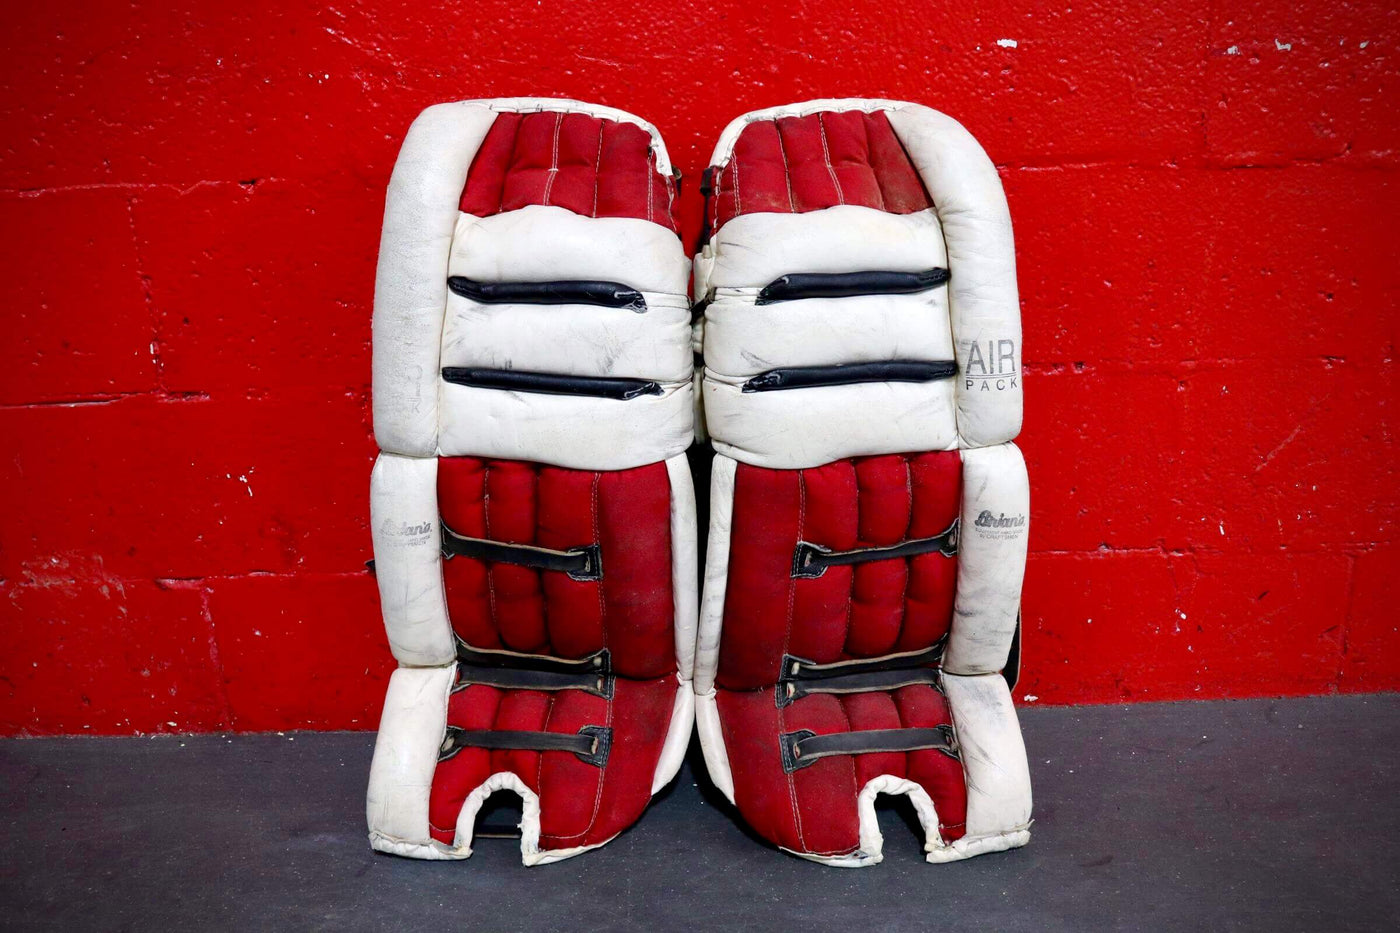 Panger Pro Series (Air Pack)